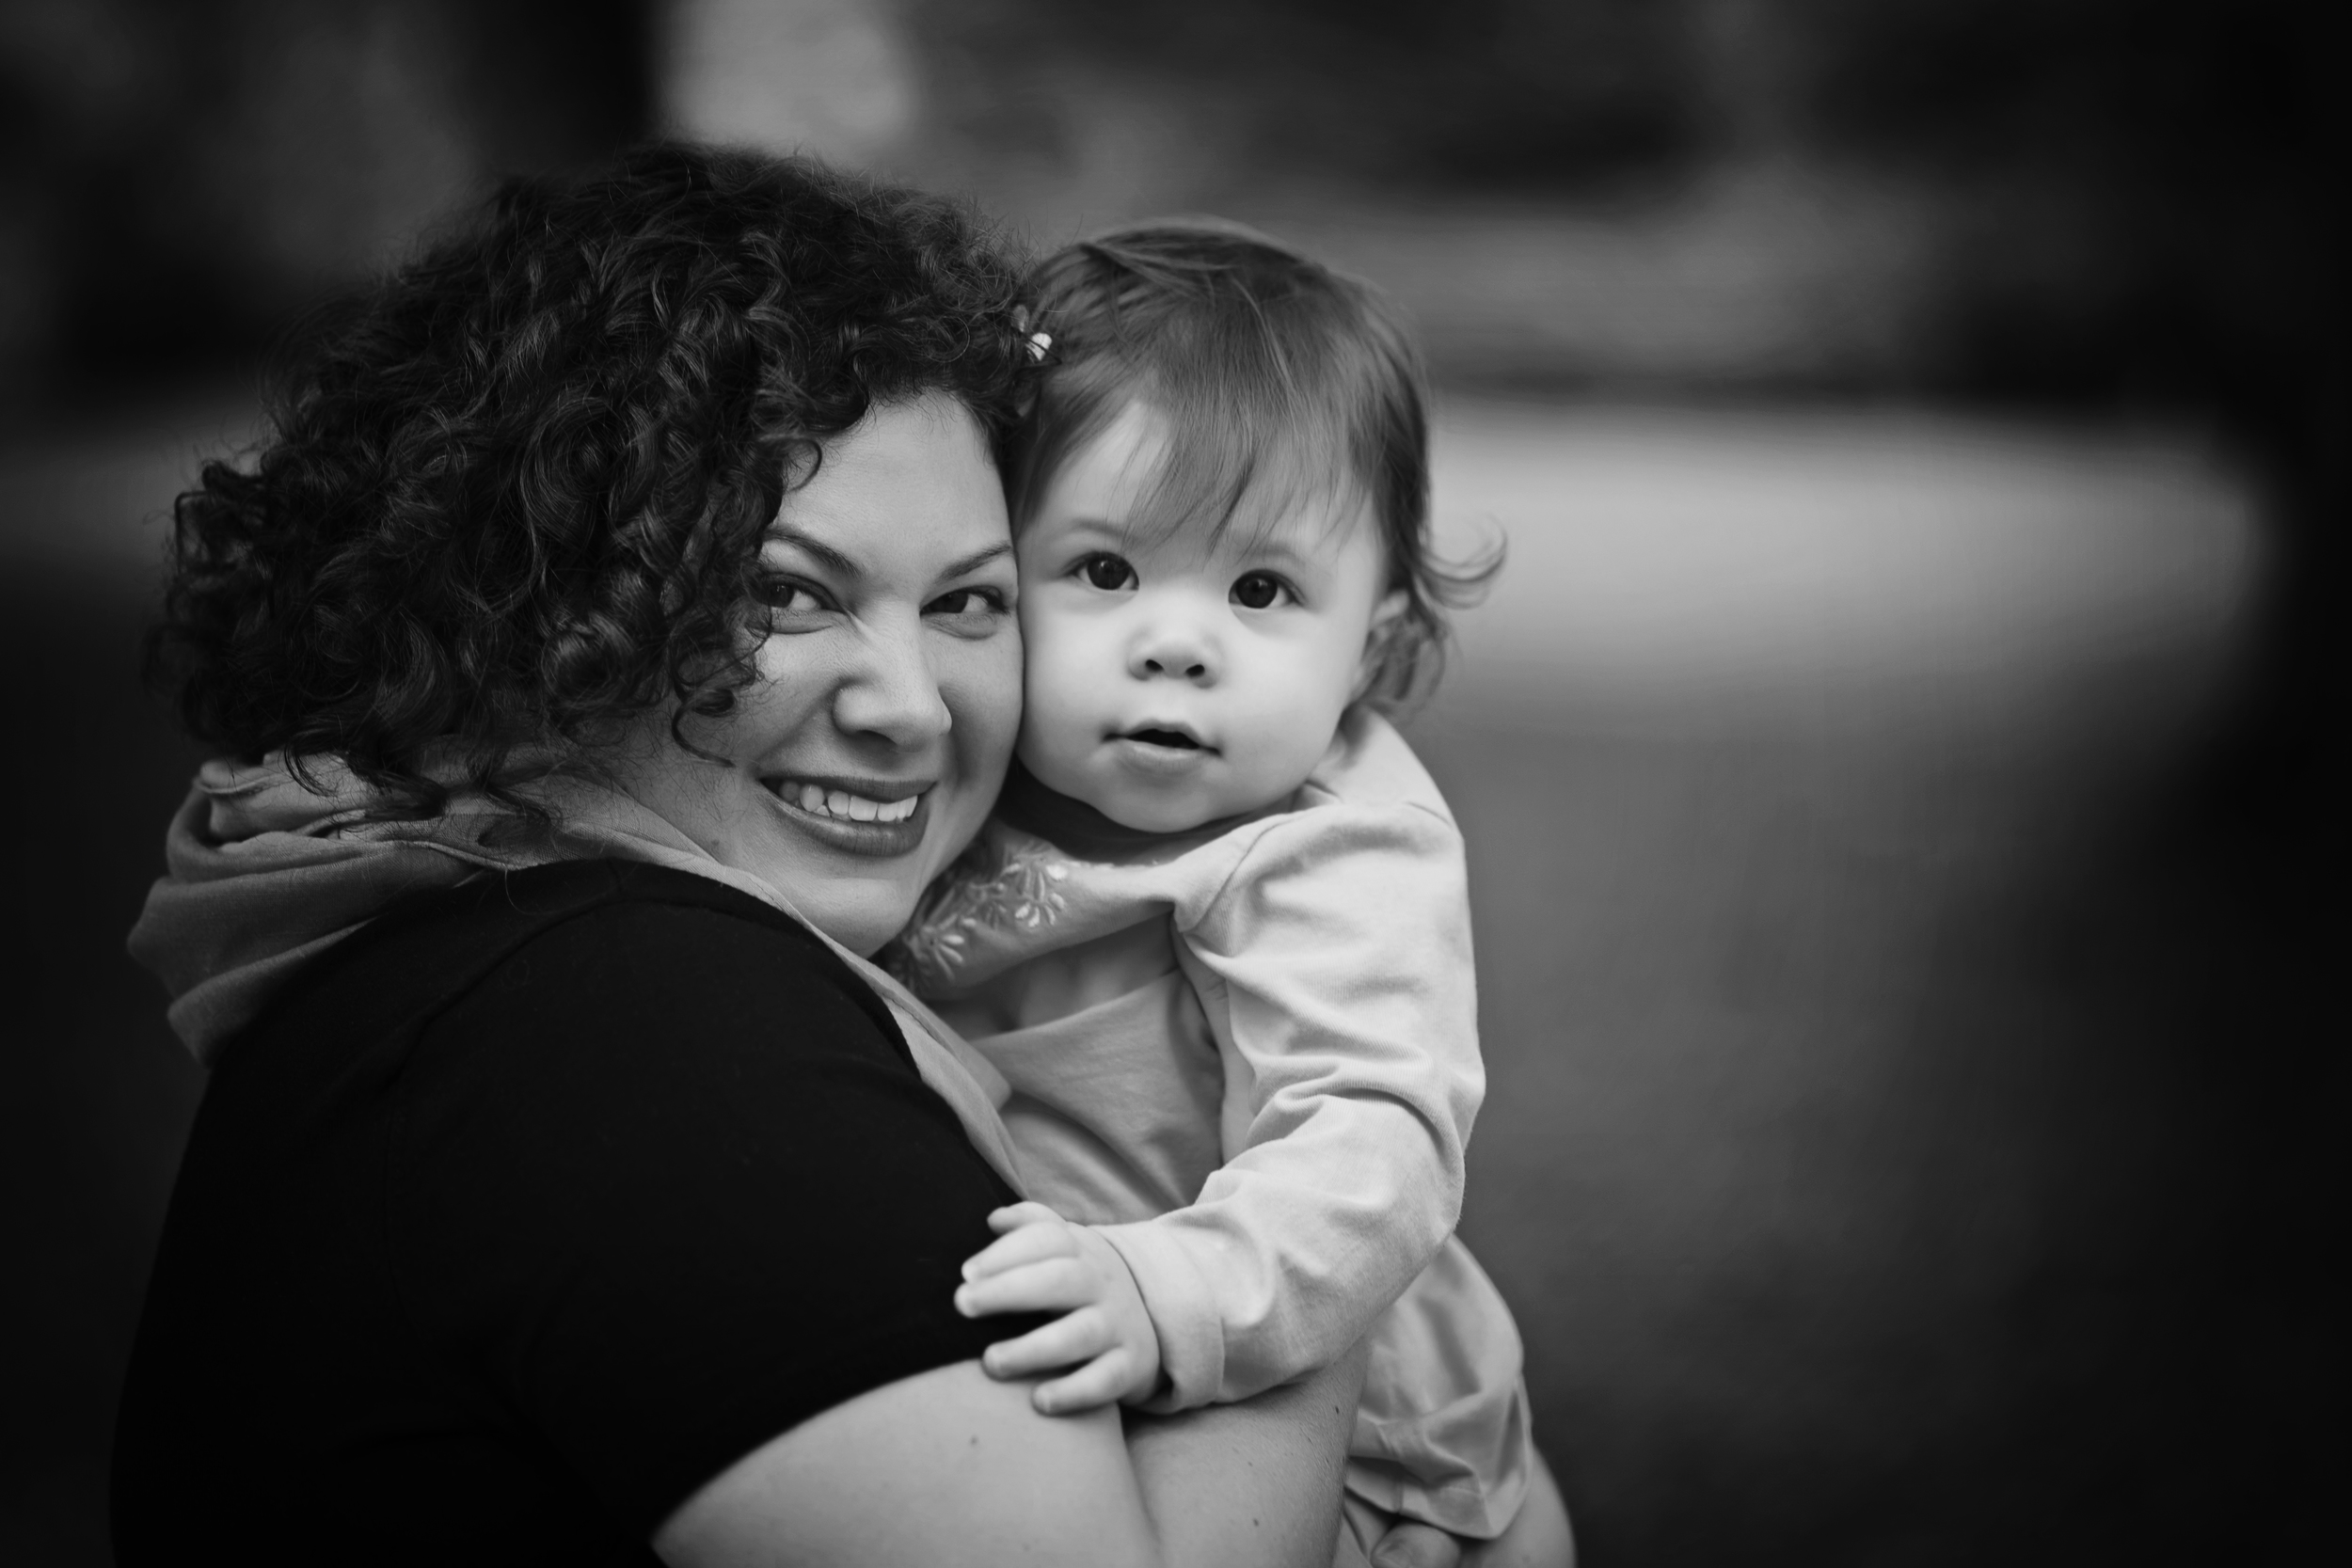 Mommy daughter black and white portraiture Kate Montaner Photography